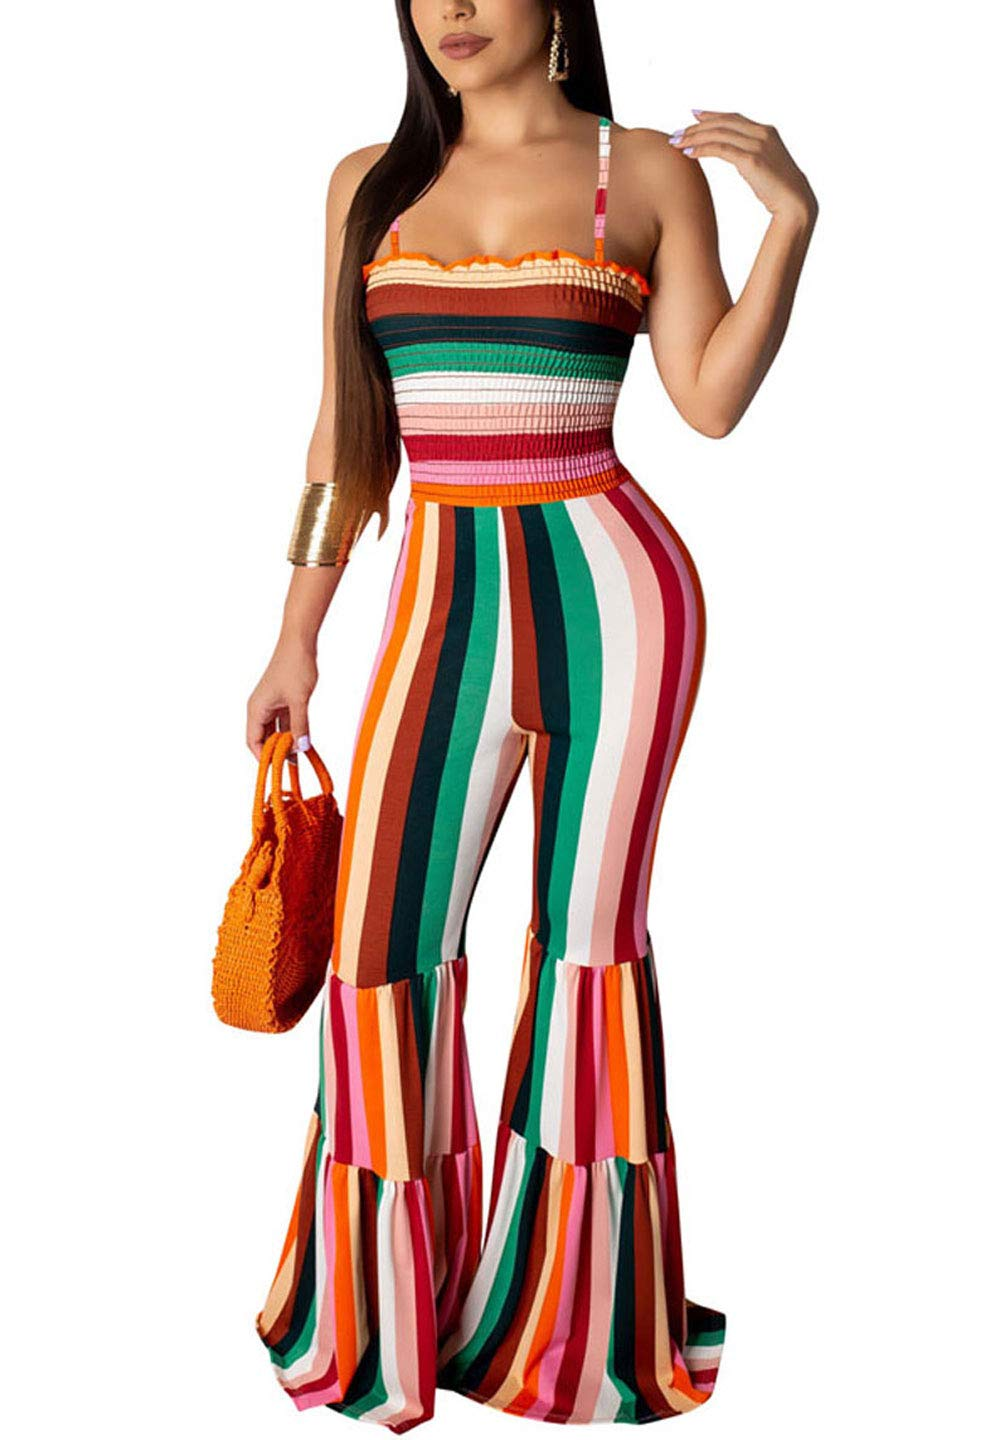 Ophestin Bell Bottom Jumpsuit for Women, Sexy Summer Spaghetti Strap Flare Pants Rompers Overalls Orange